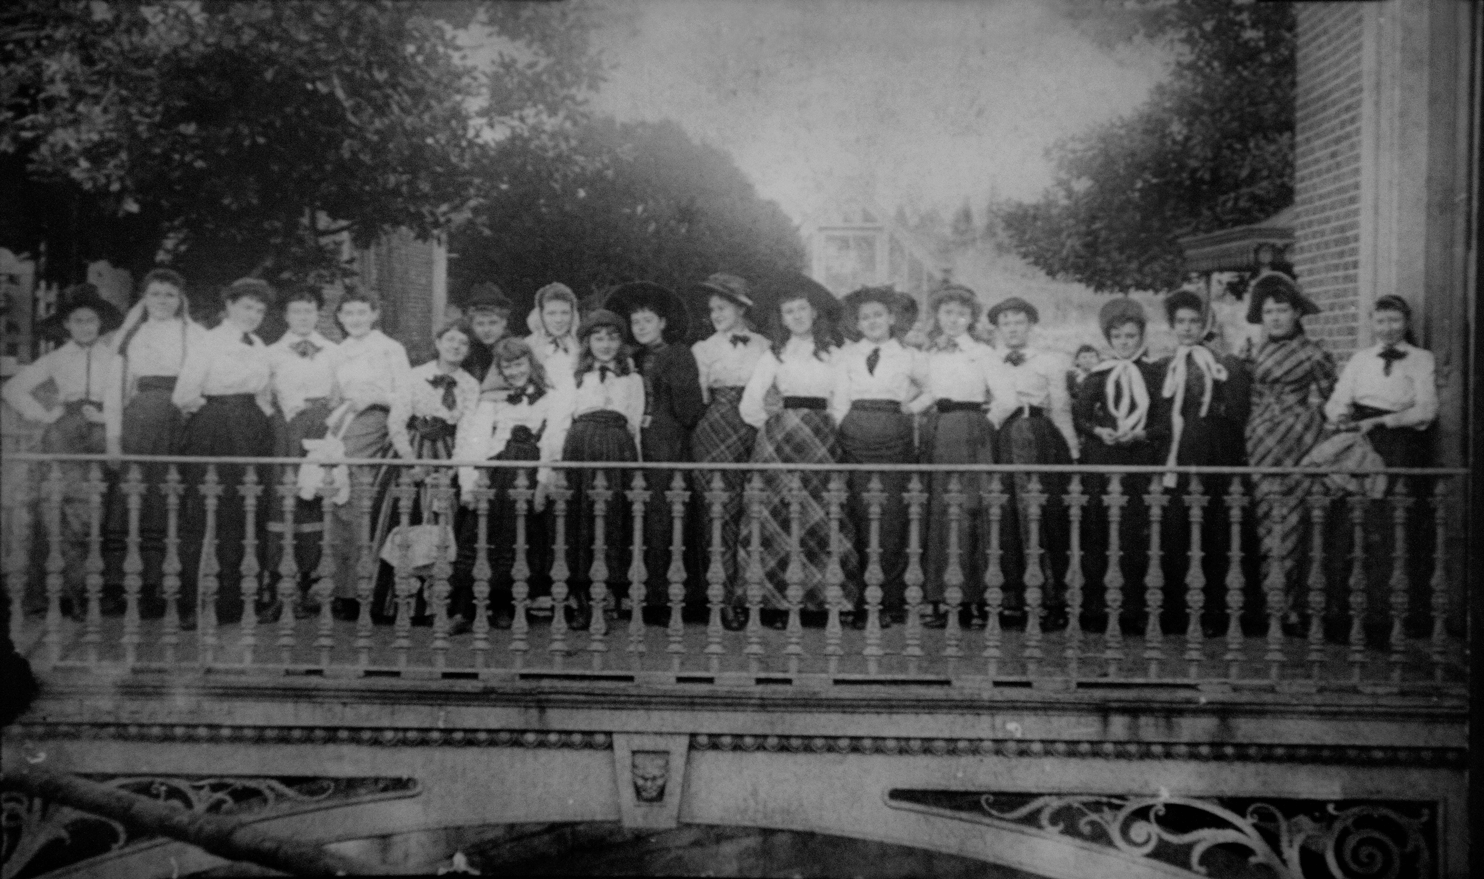 Belmont College Class on Bell Tower Moat Bridge